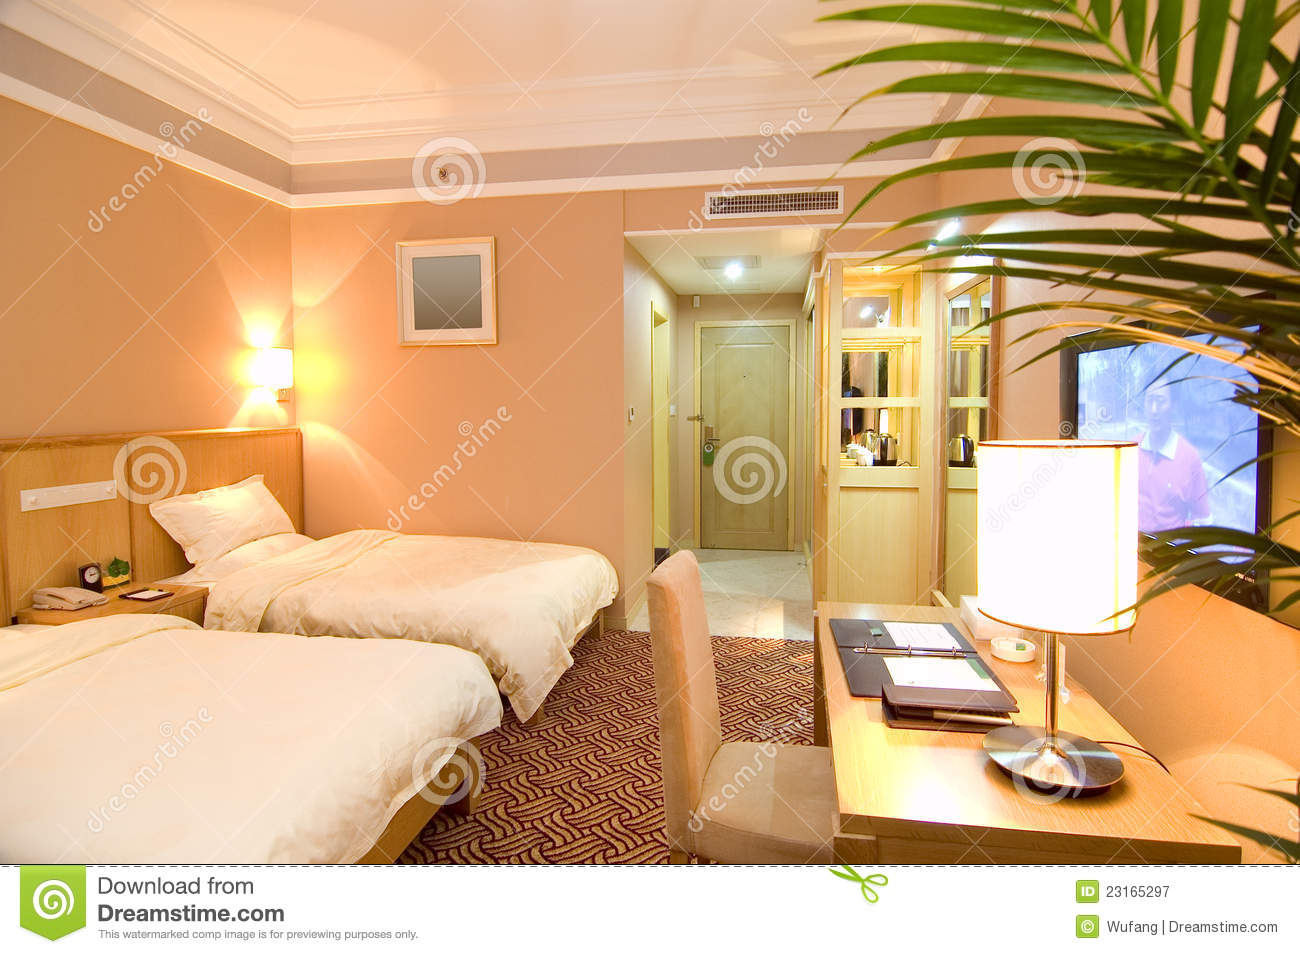 Hotel rooms royalty free stock photography image 23165297 for Designhotel maastricht comfort xl